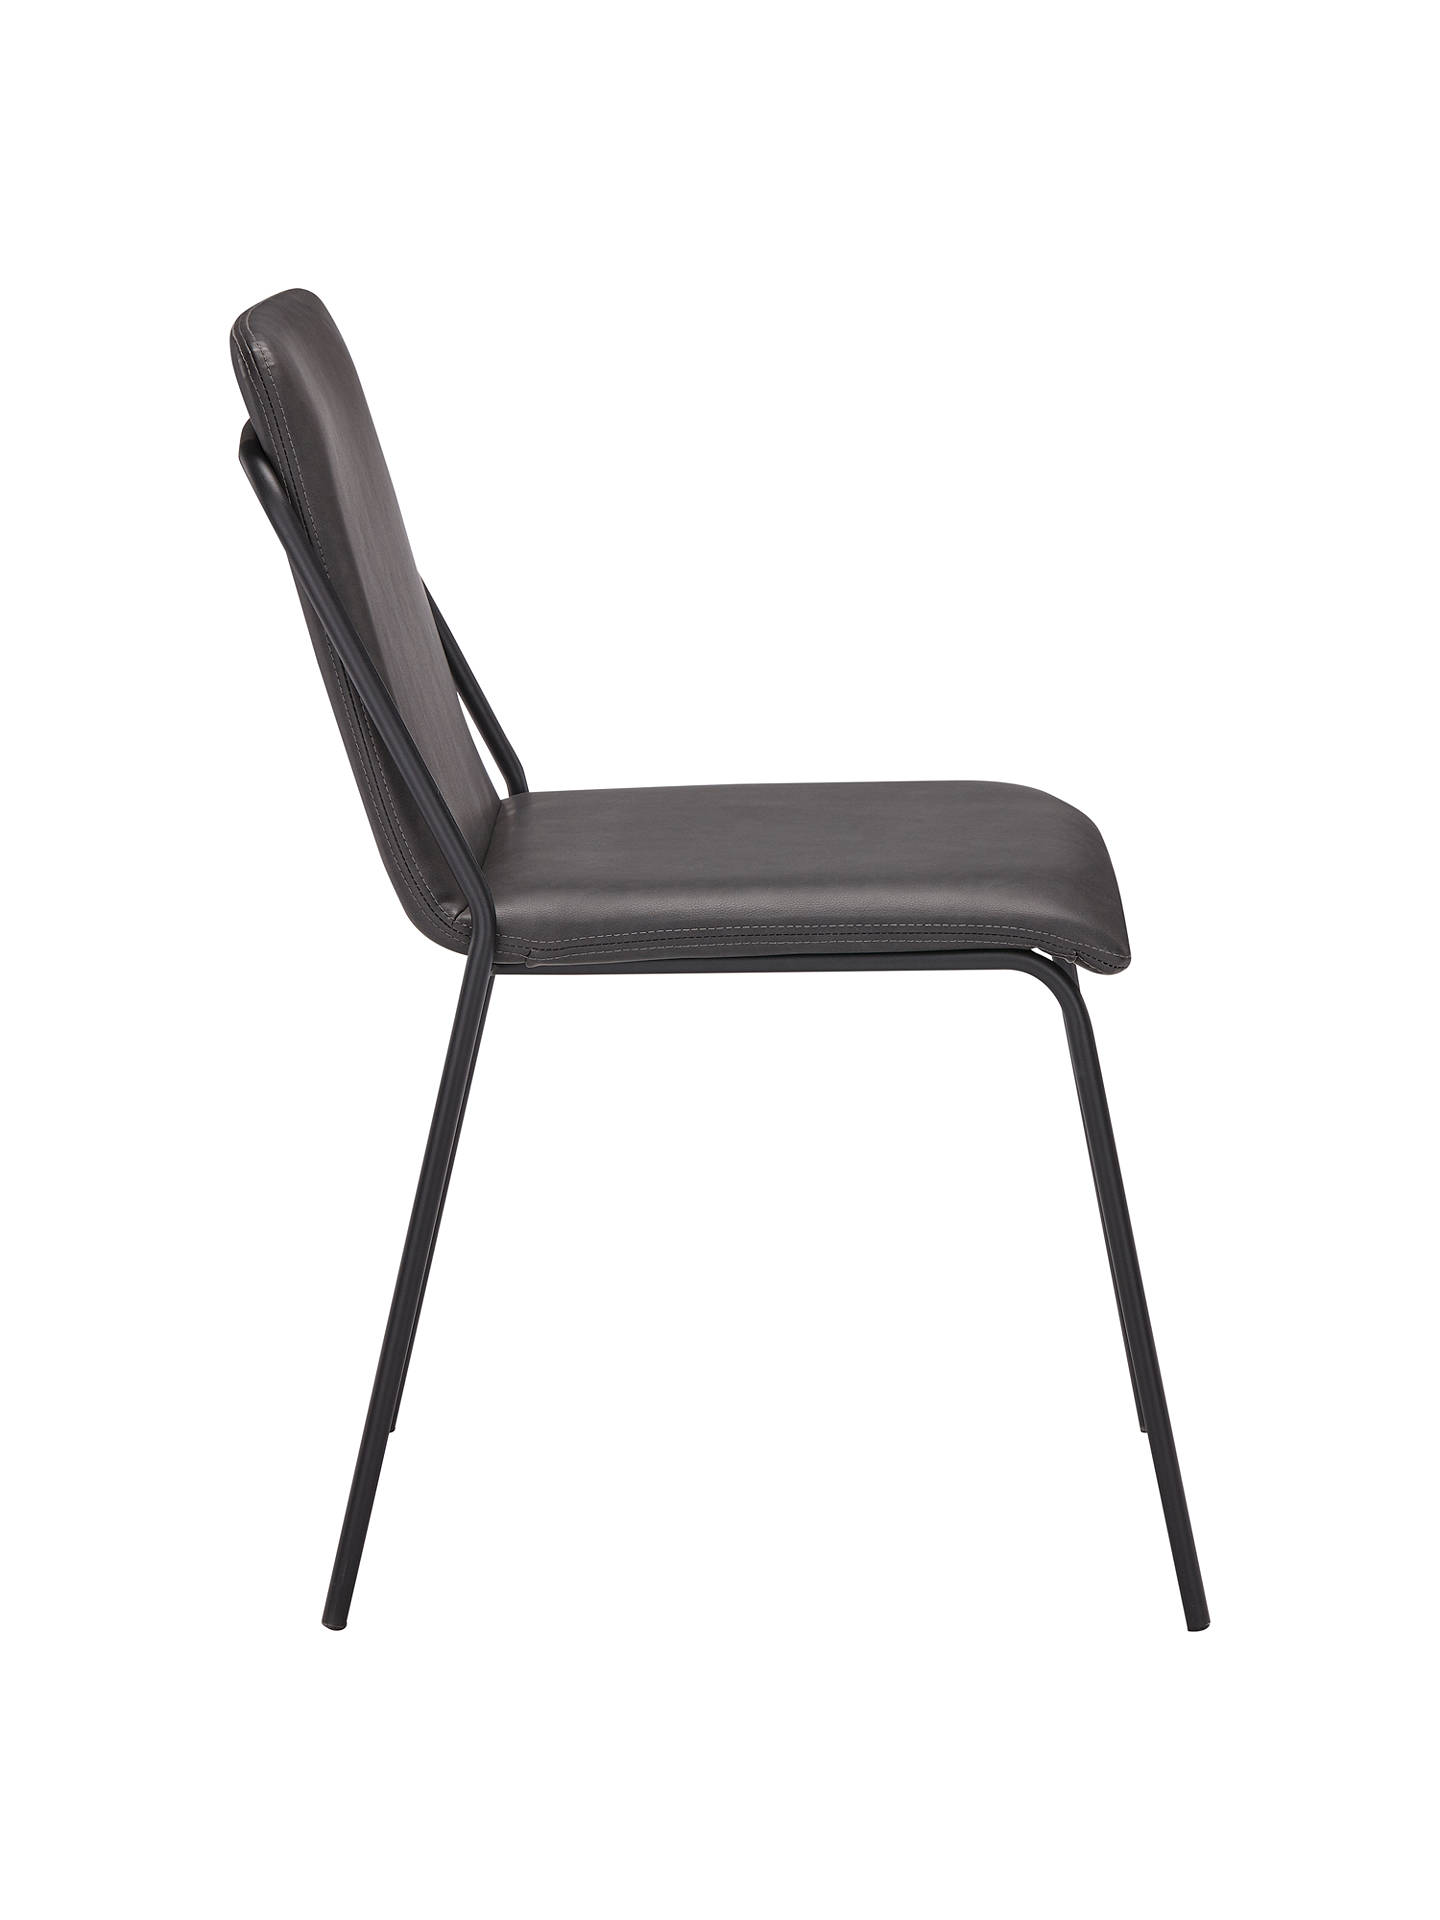 BuyJohn Lewis Rimini Dining Chairs, Set of 2, Dark Grey Online at johnlewis.com